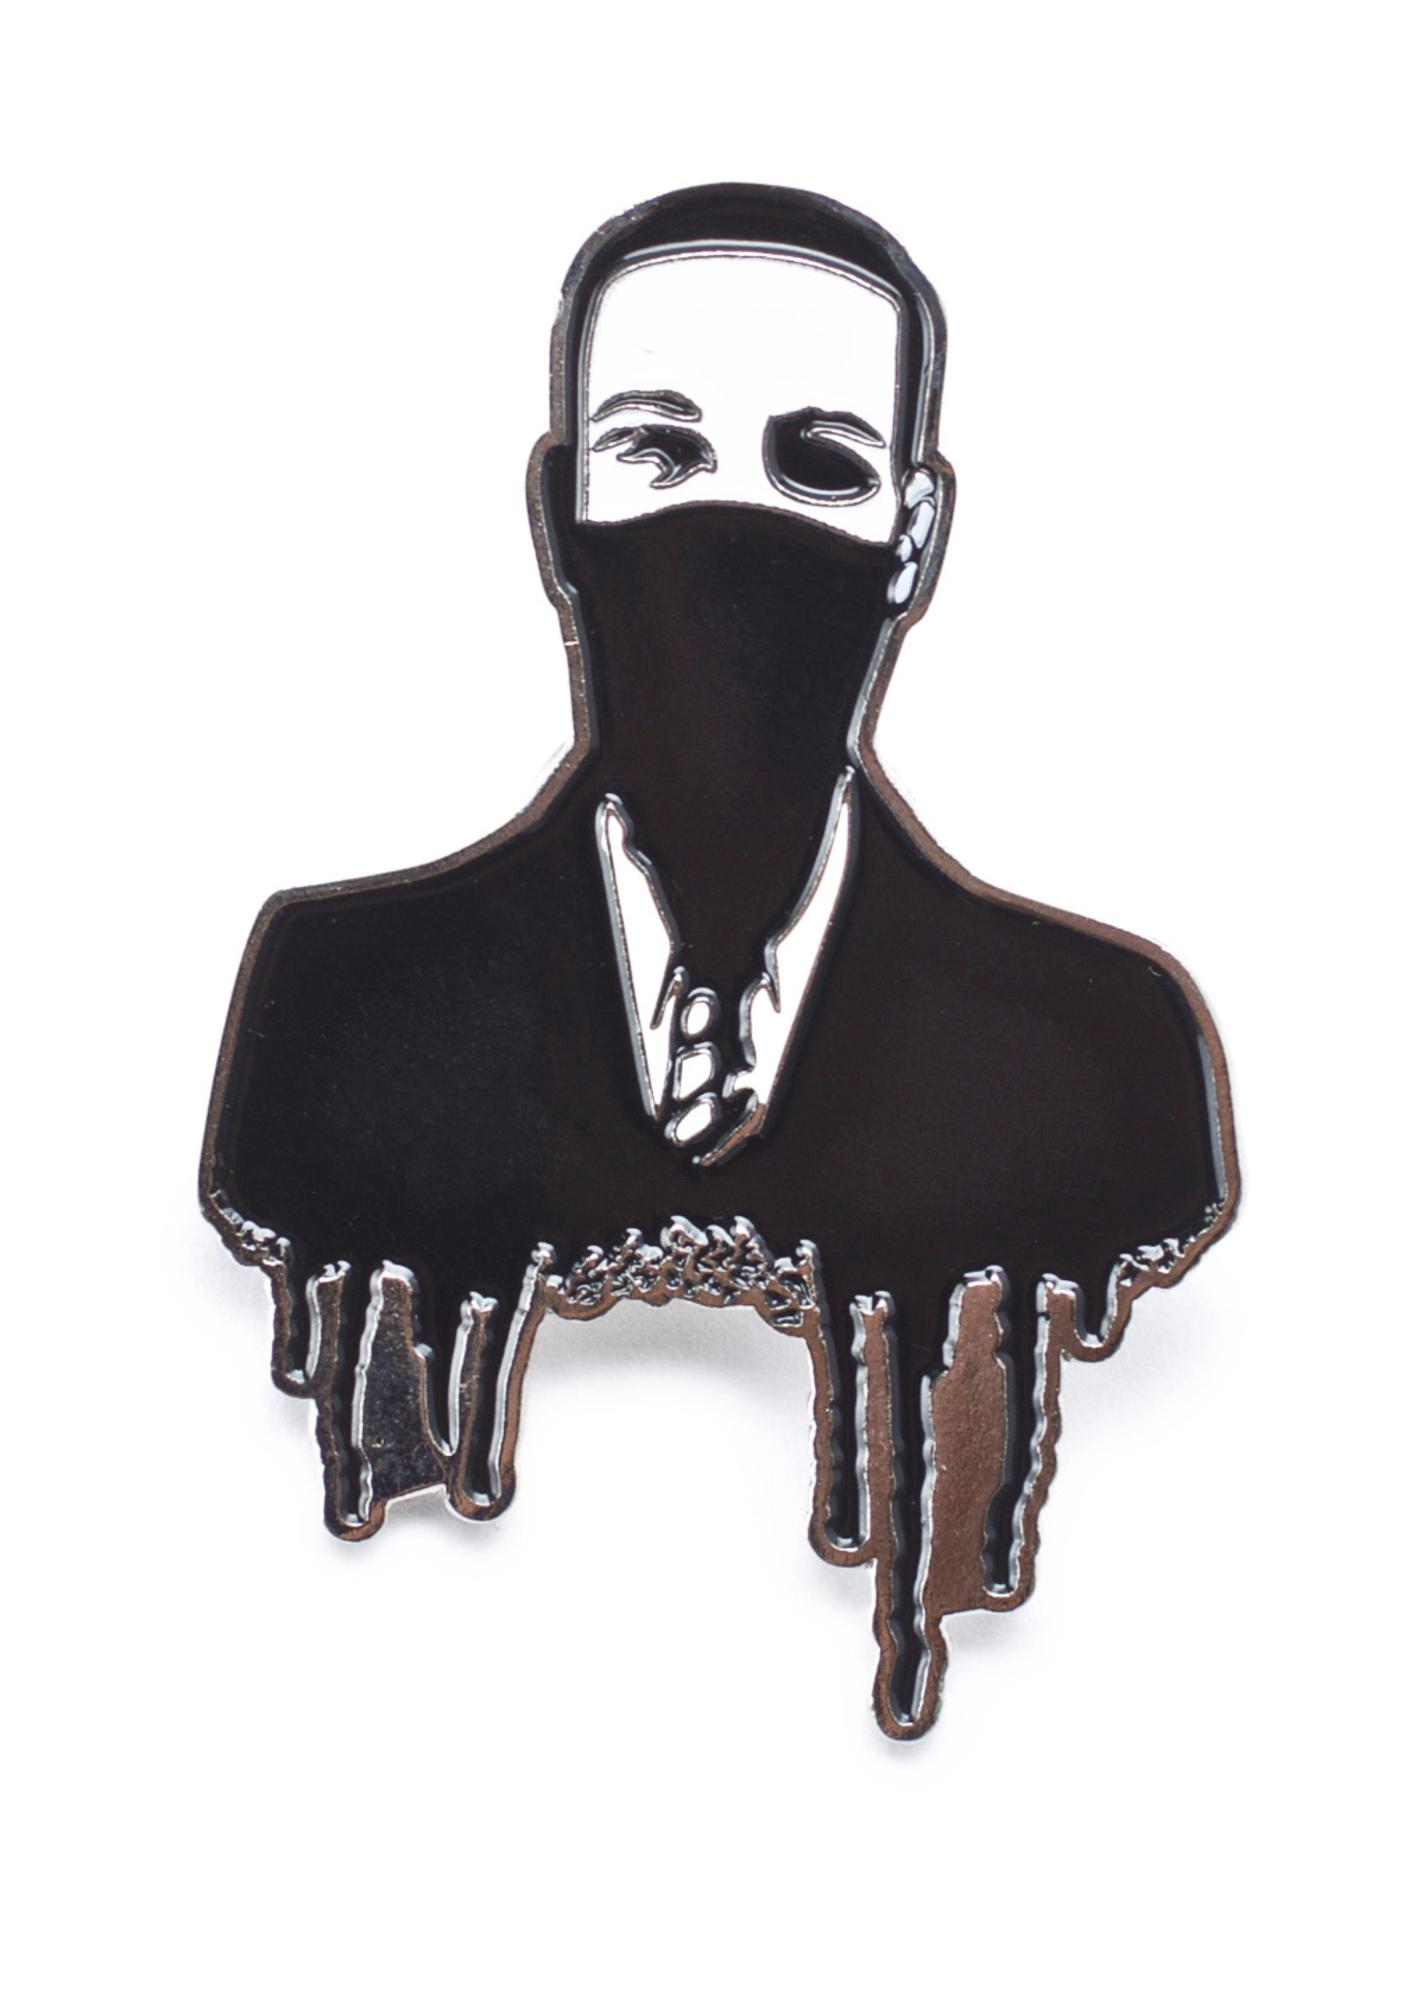 ABCNT Corporate Ransom Pin